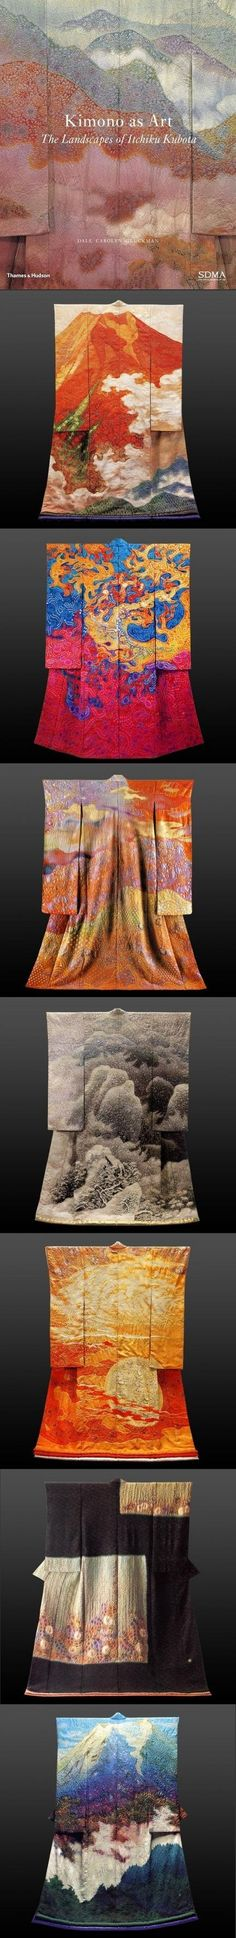 Japanese Kimono Japan - I saw this in person at the Canton Art Museum, Canton, Ohio.